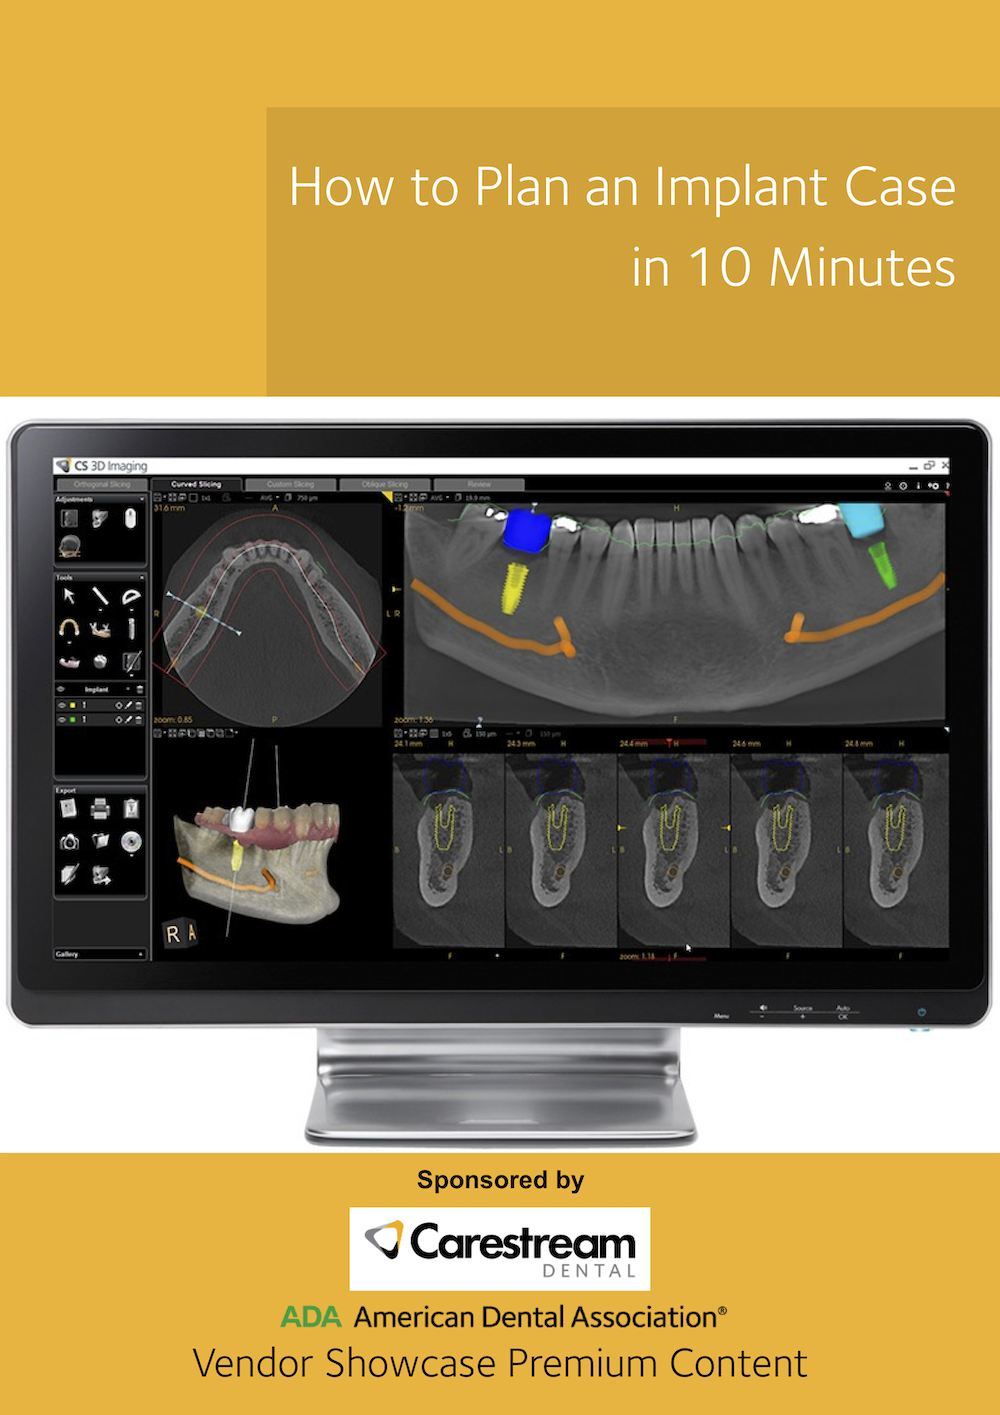 How to Plan an Implant Case in 10 Minutes (2)